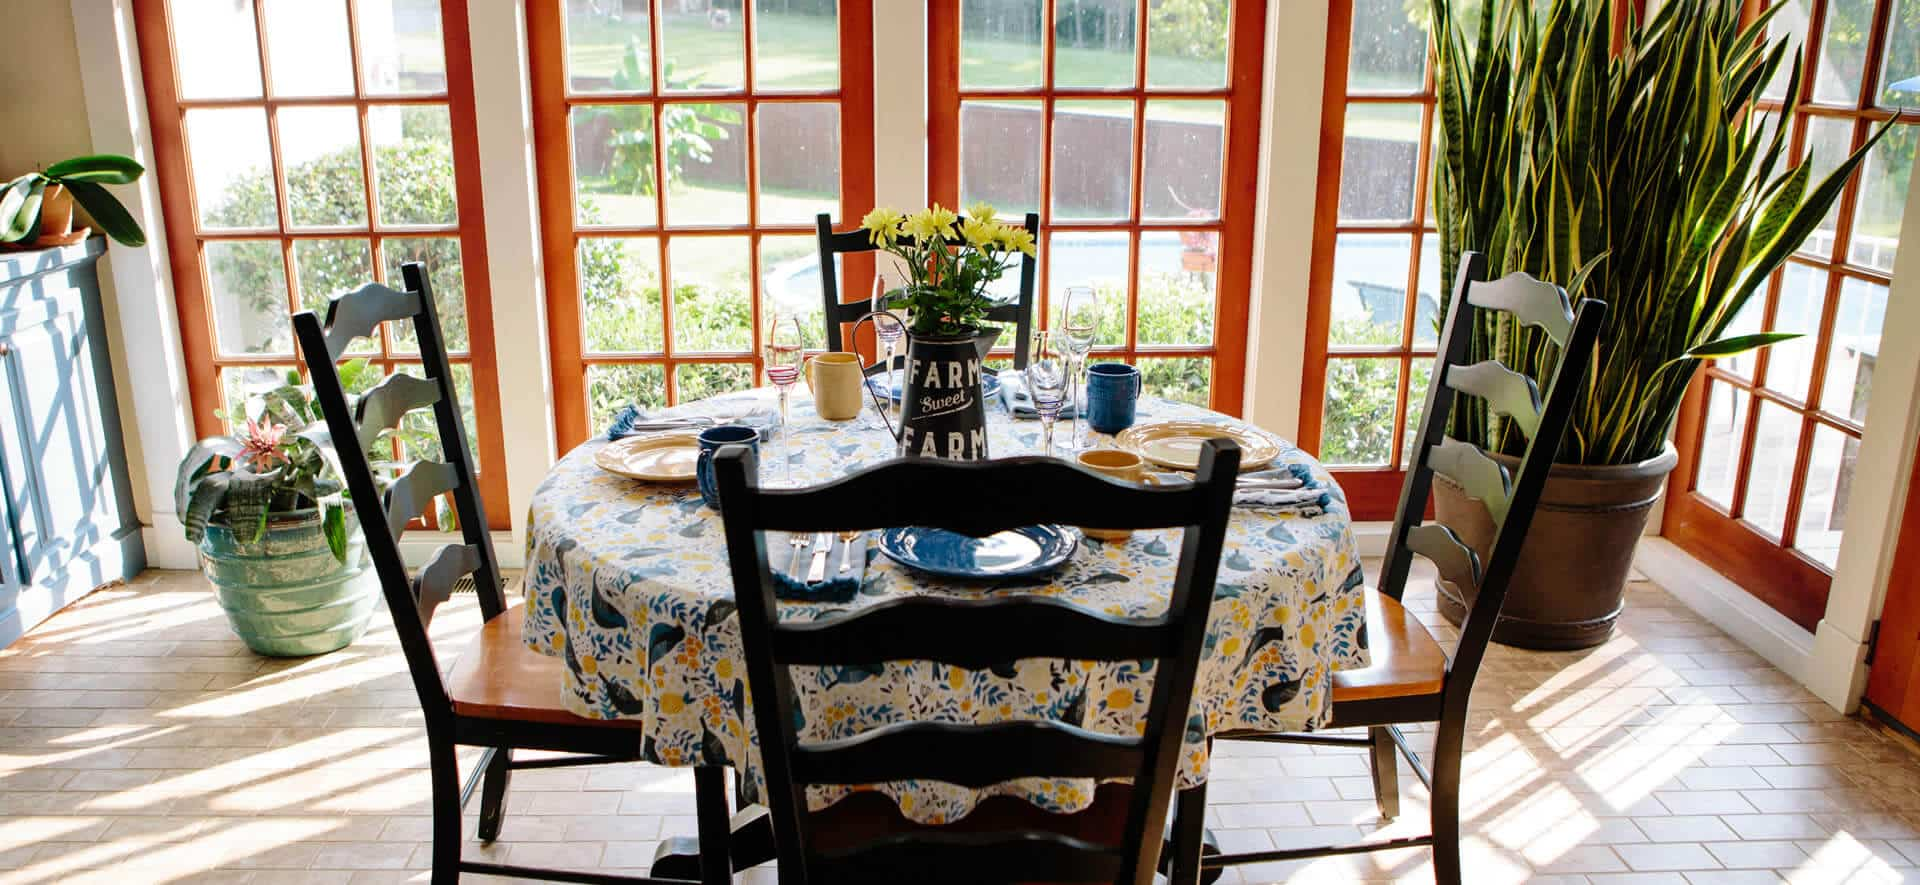 Small four-top table with a flowered cloth in front of a large window in a bright and airy breakfast room